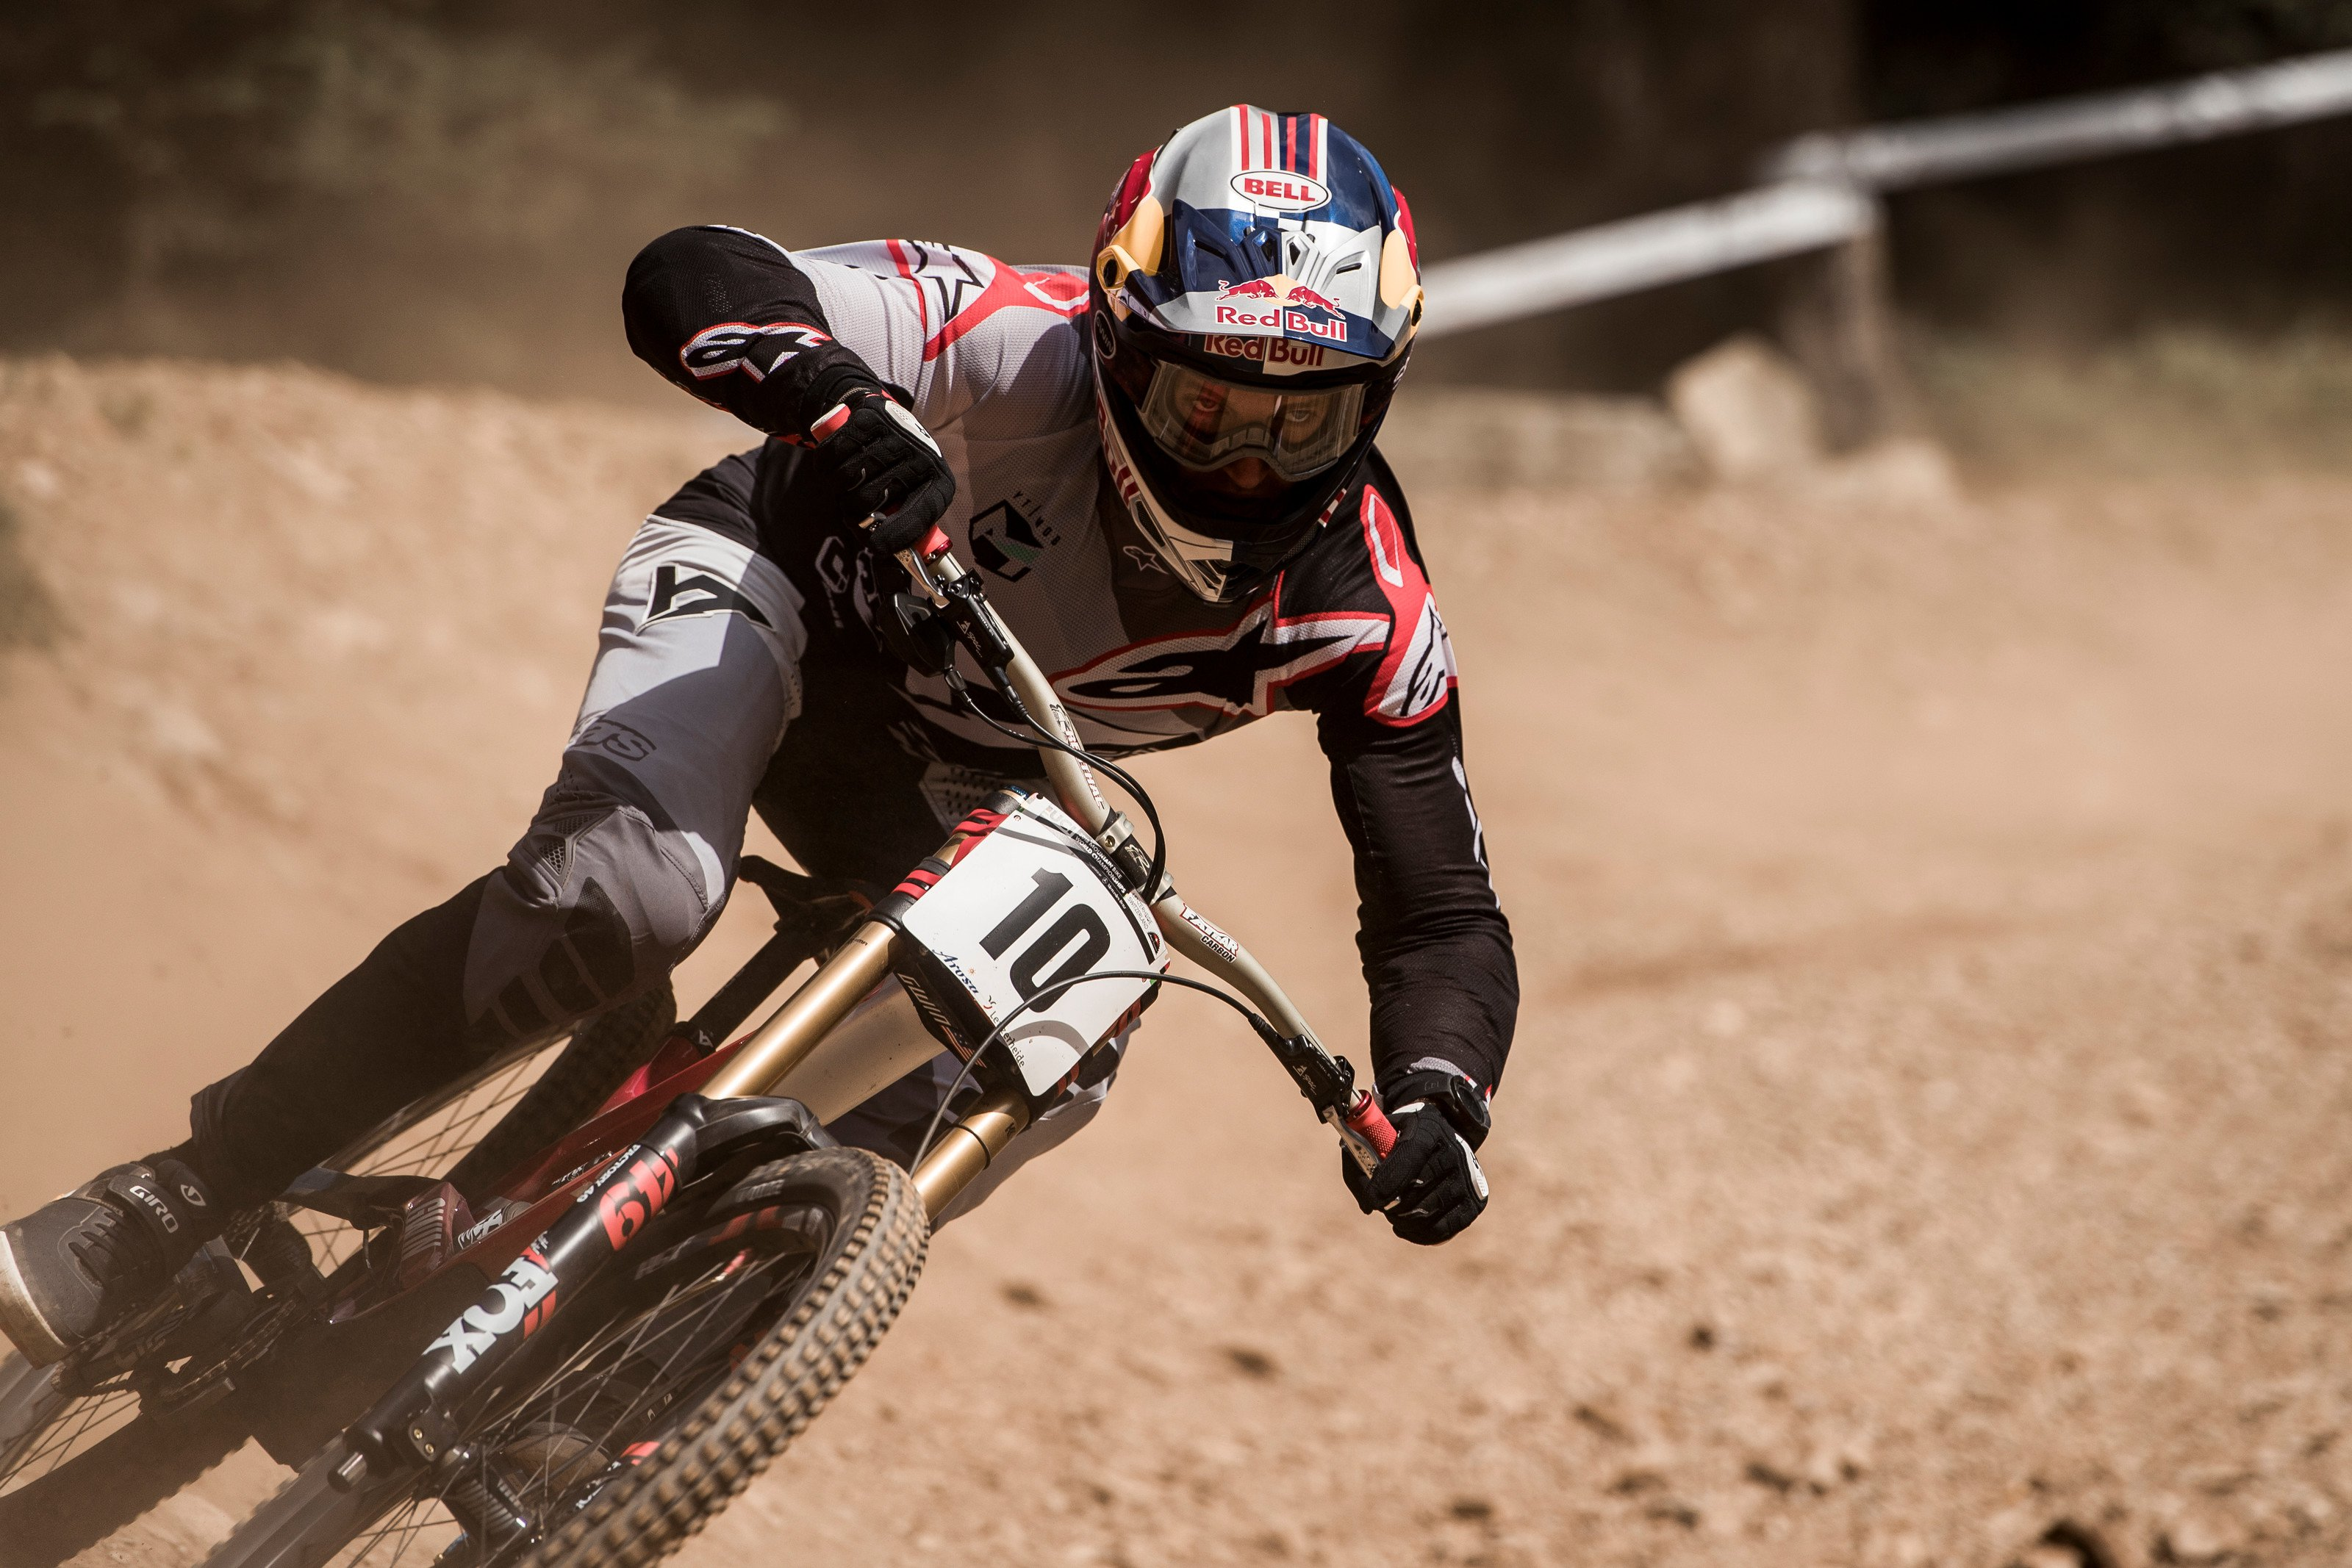 Aaron Gwin racing at the Lenzerheide DH World Championships